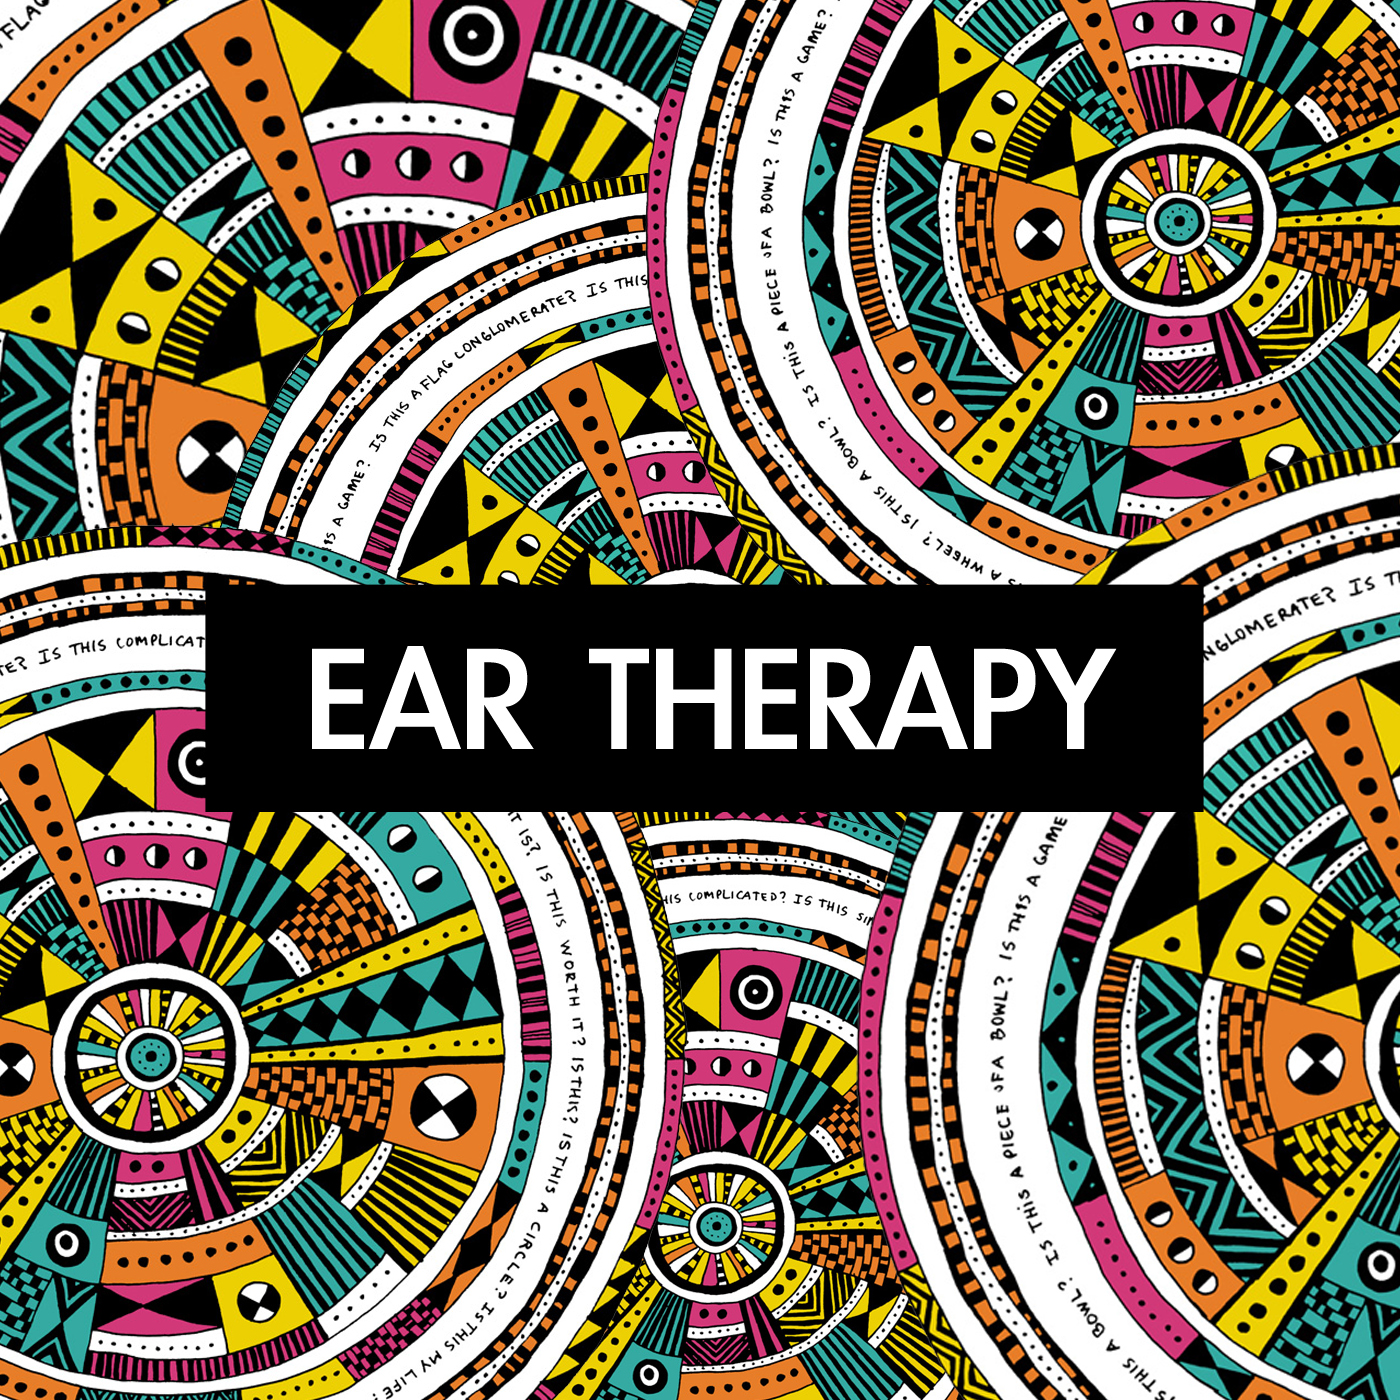 Ear Therapy » Ear Therapy